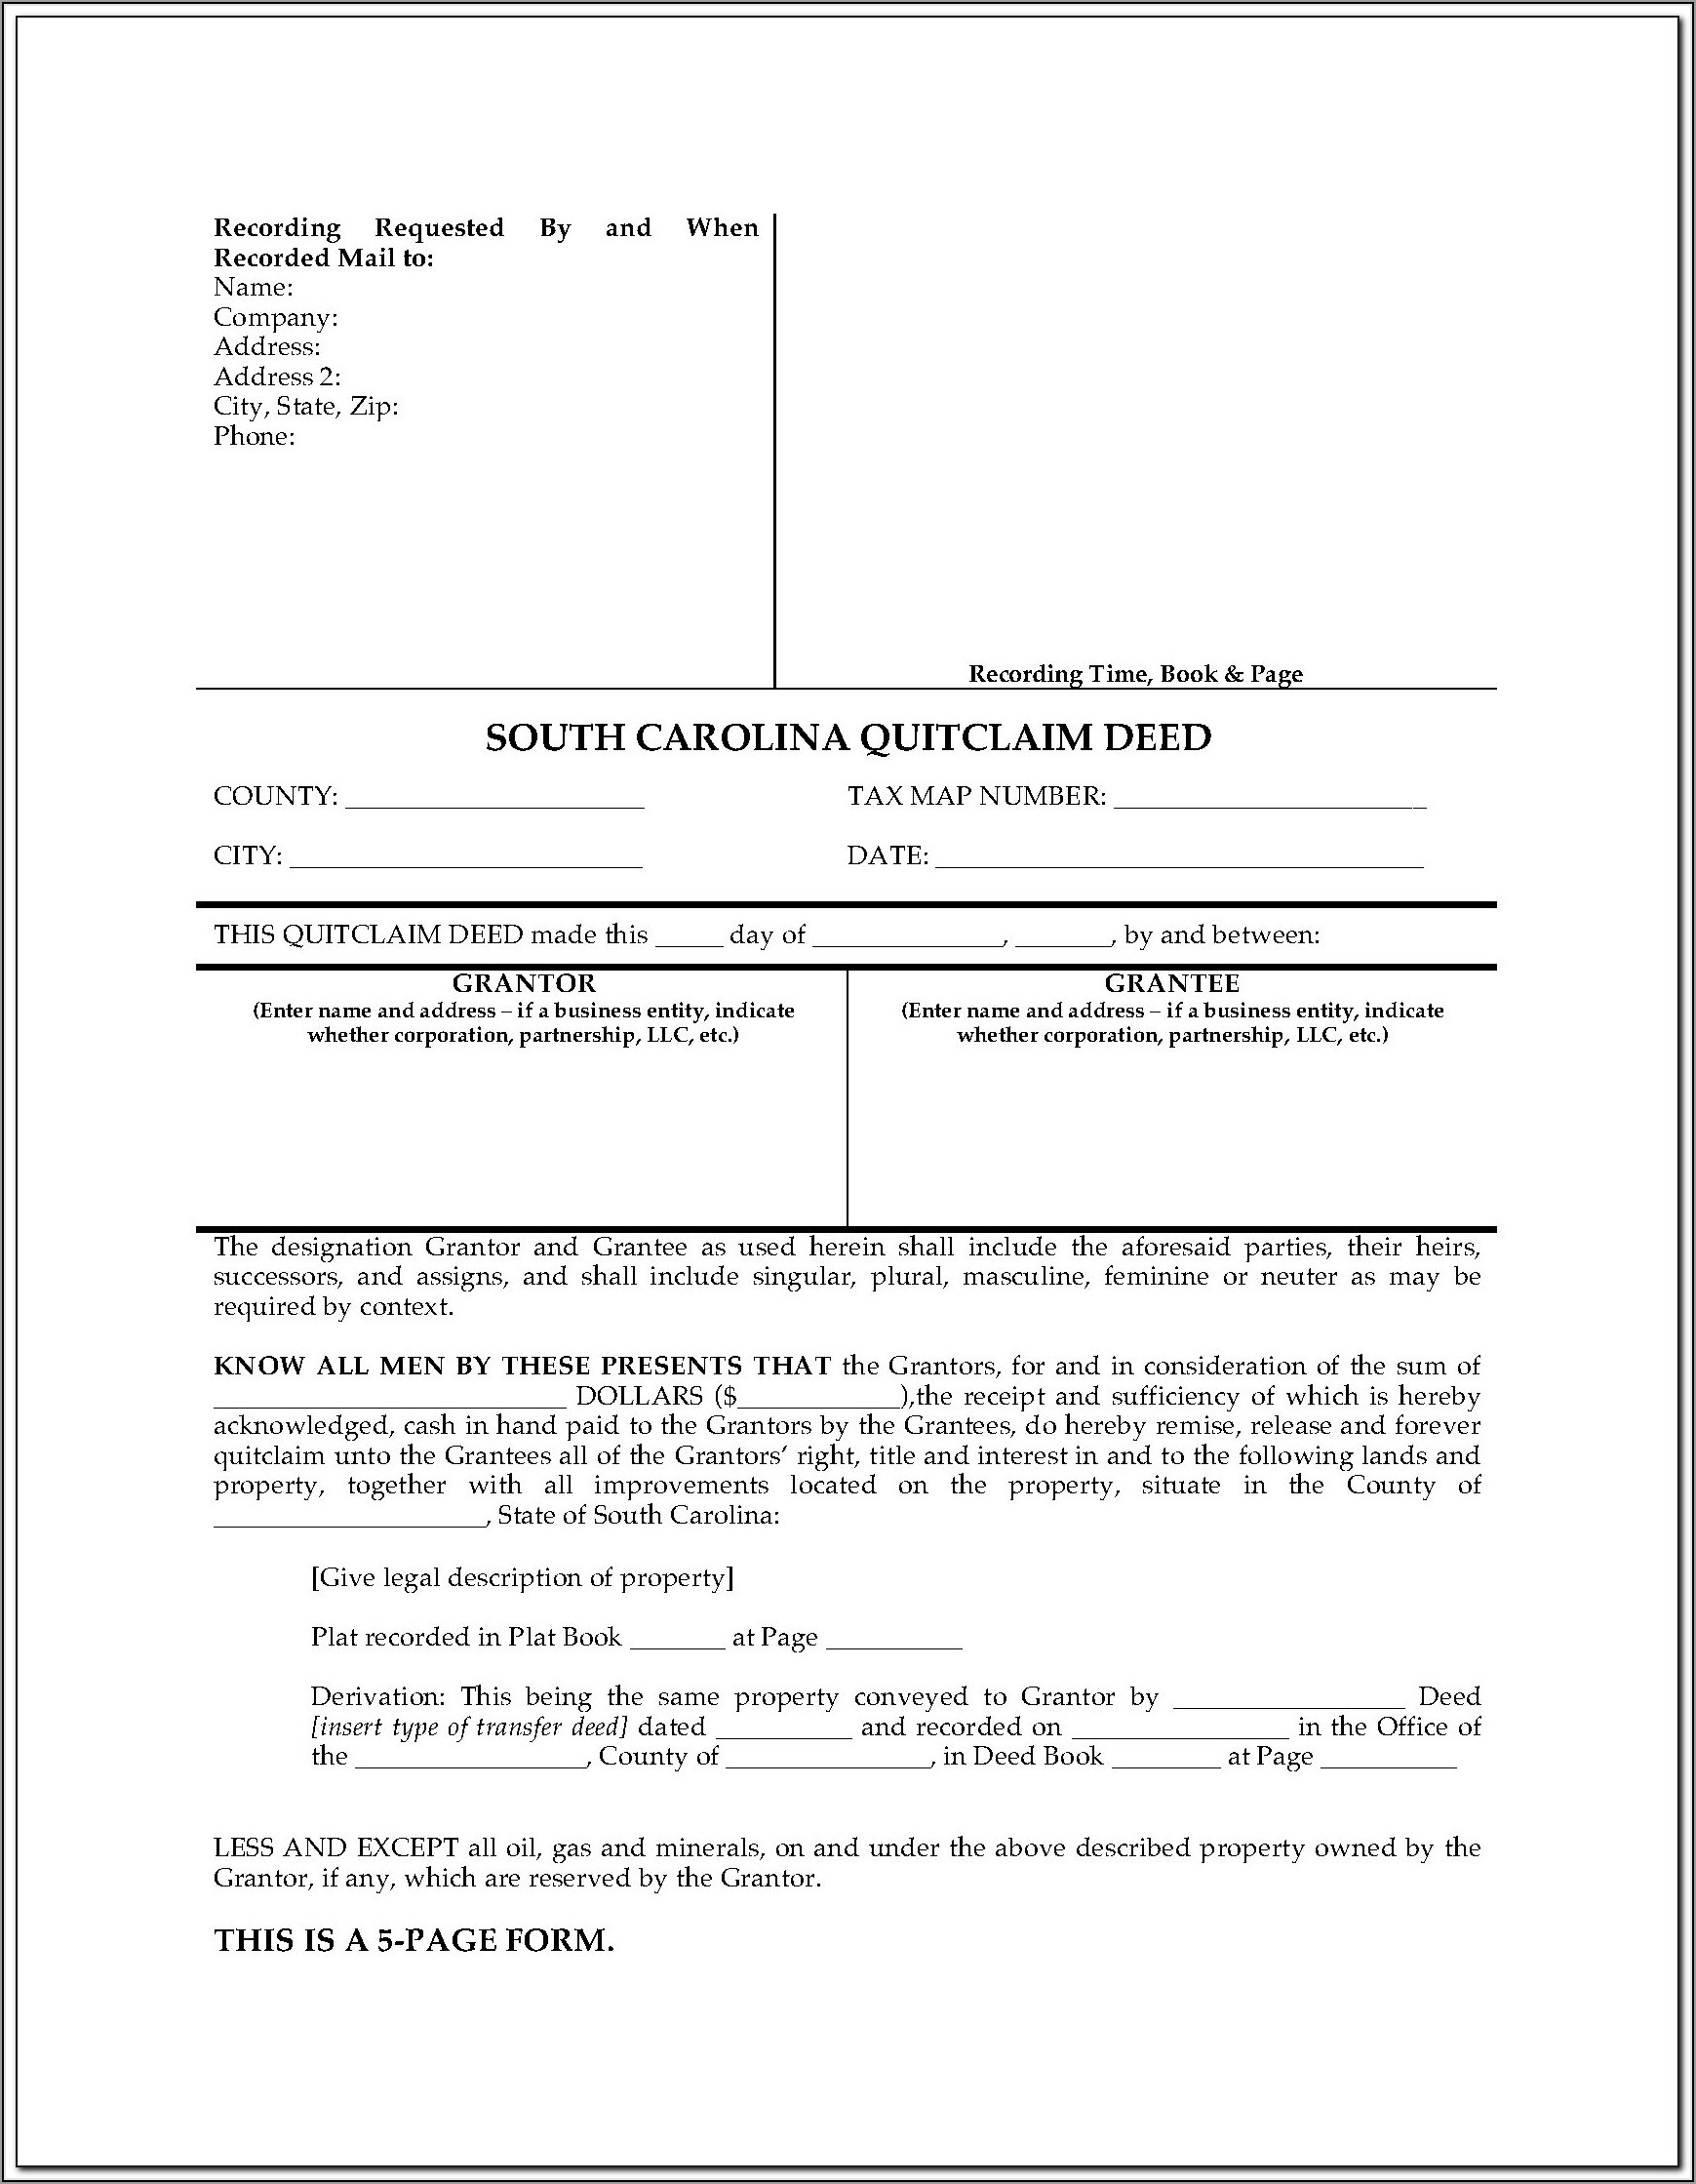 South Carolina Quitclaim Deed Form